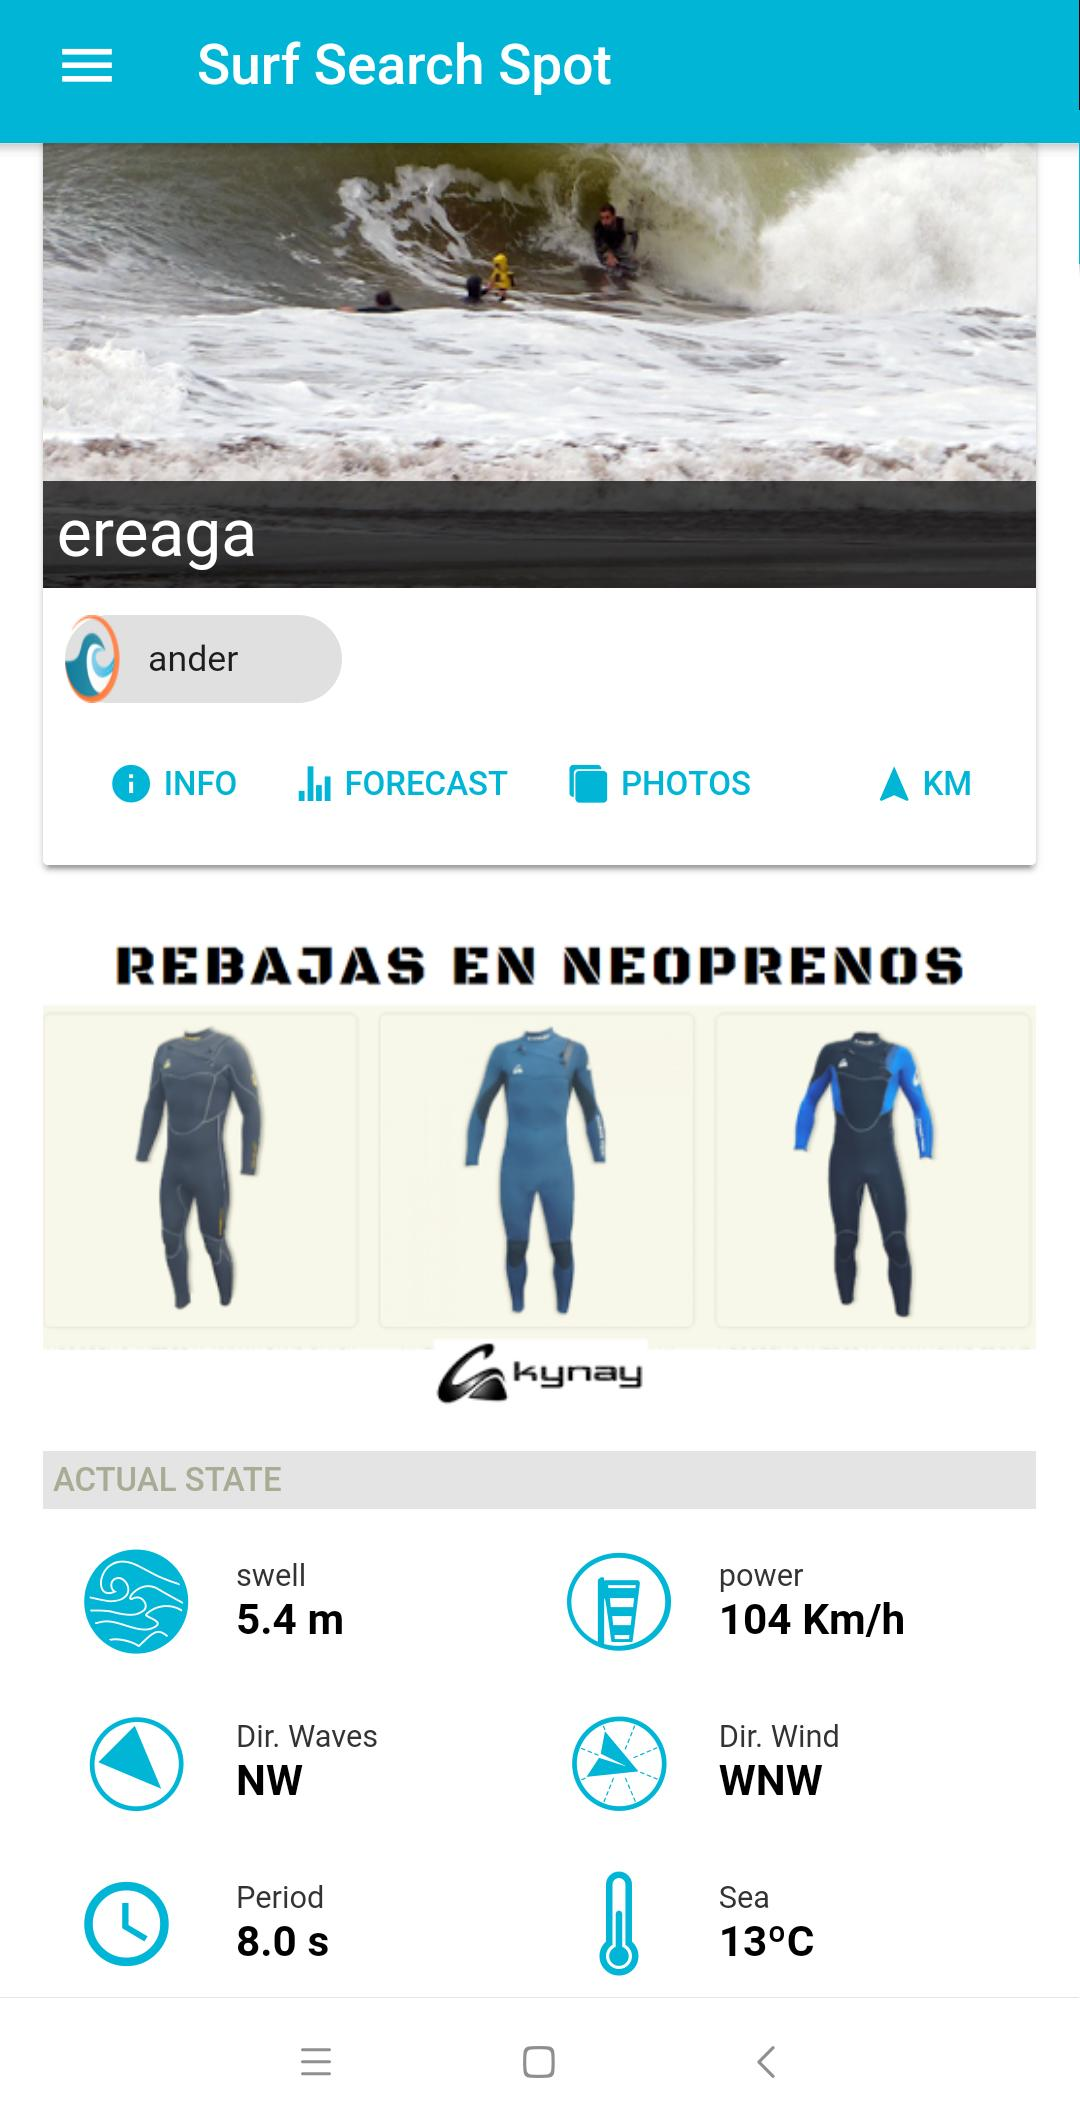 Mobile apps for surfers surf search spot app